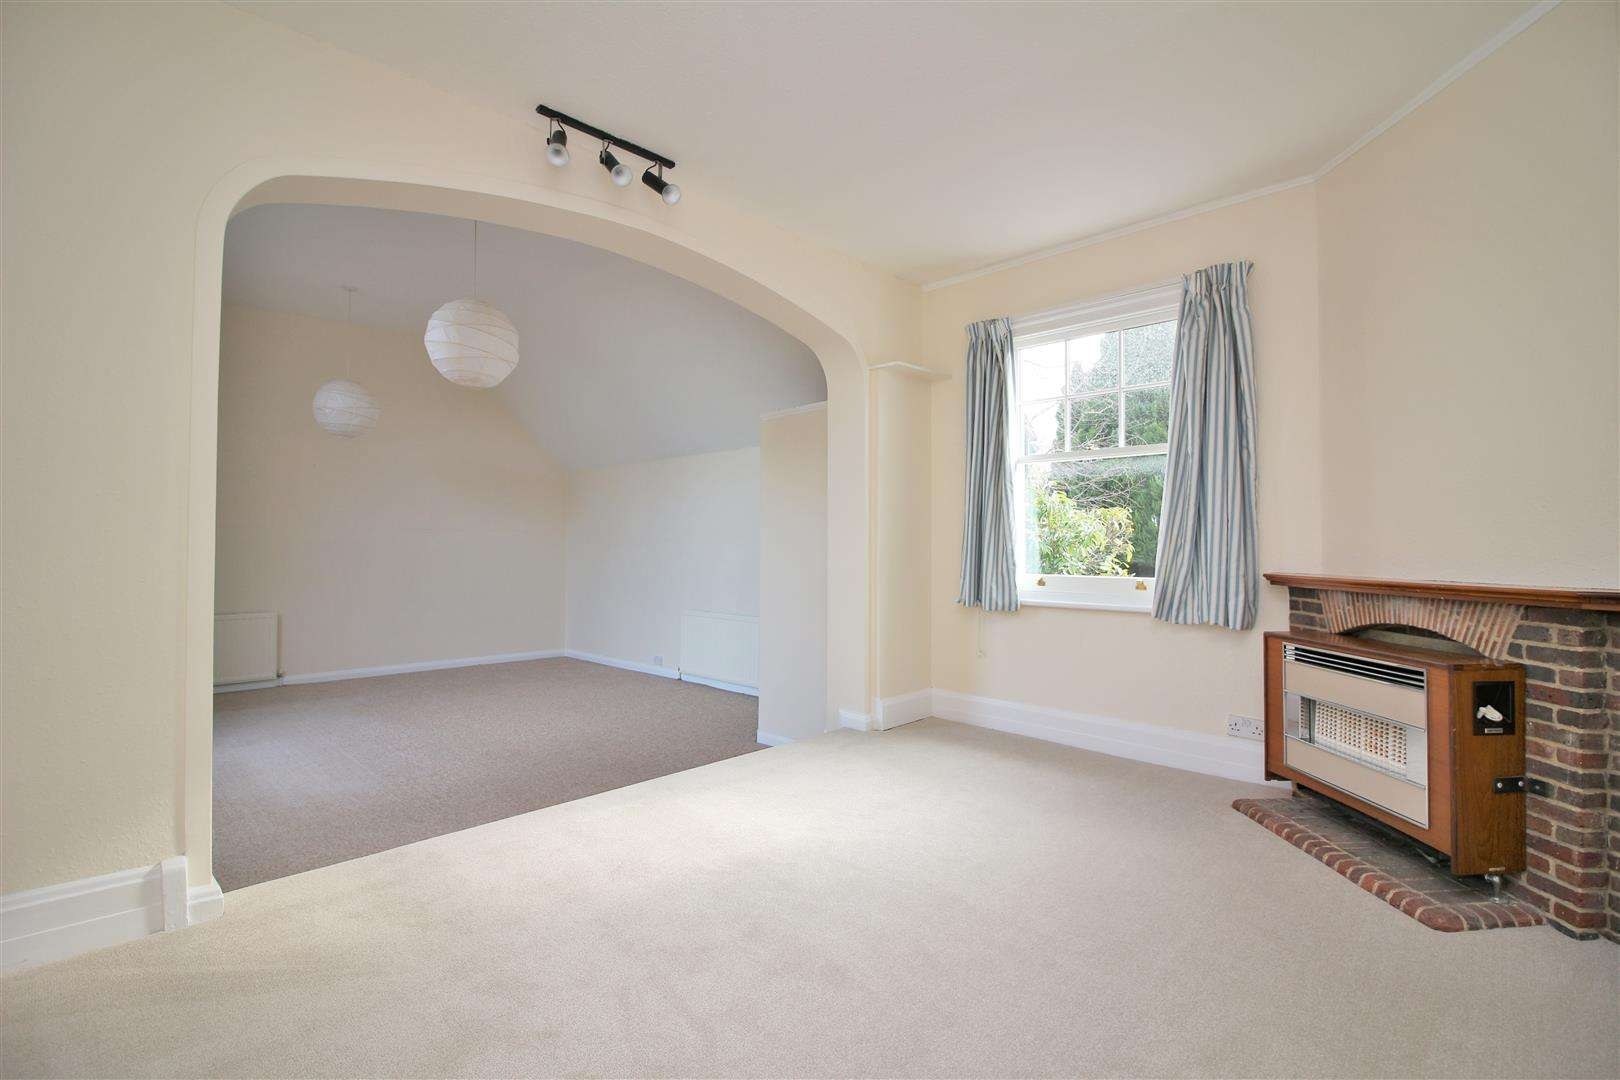 5 bed to rent - (Property Image 10)